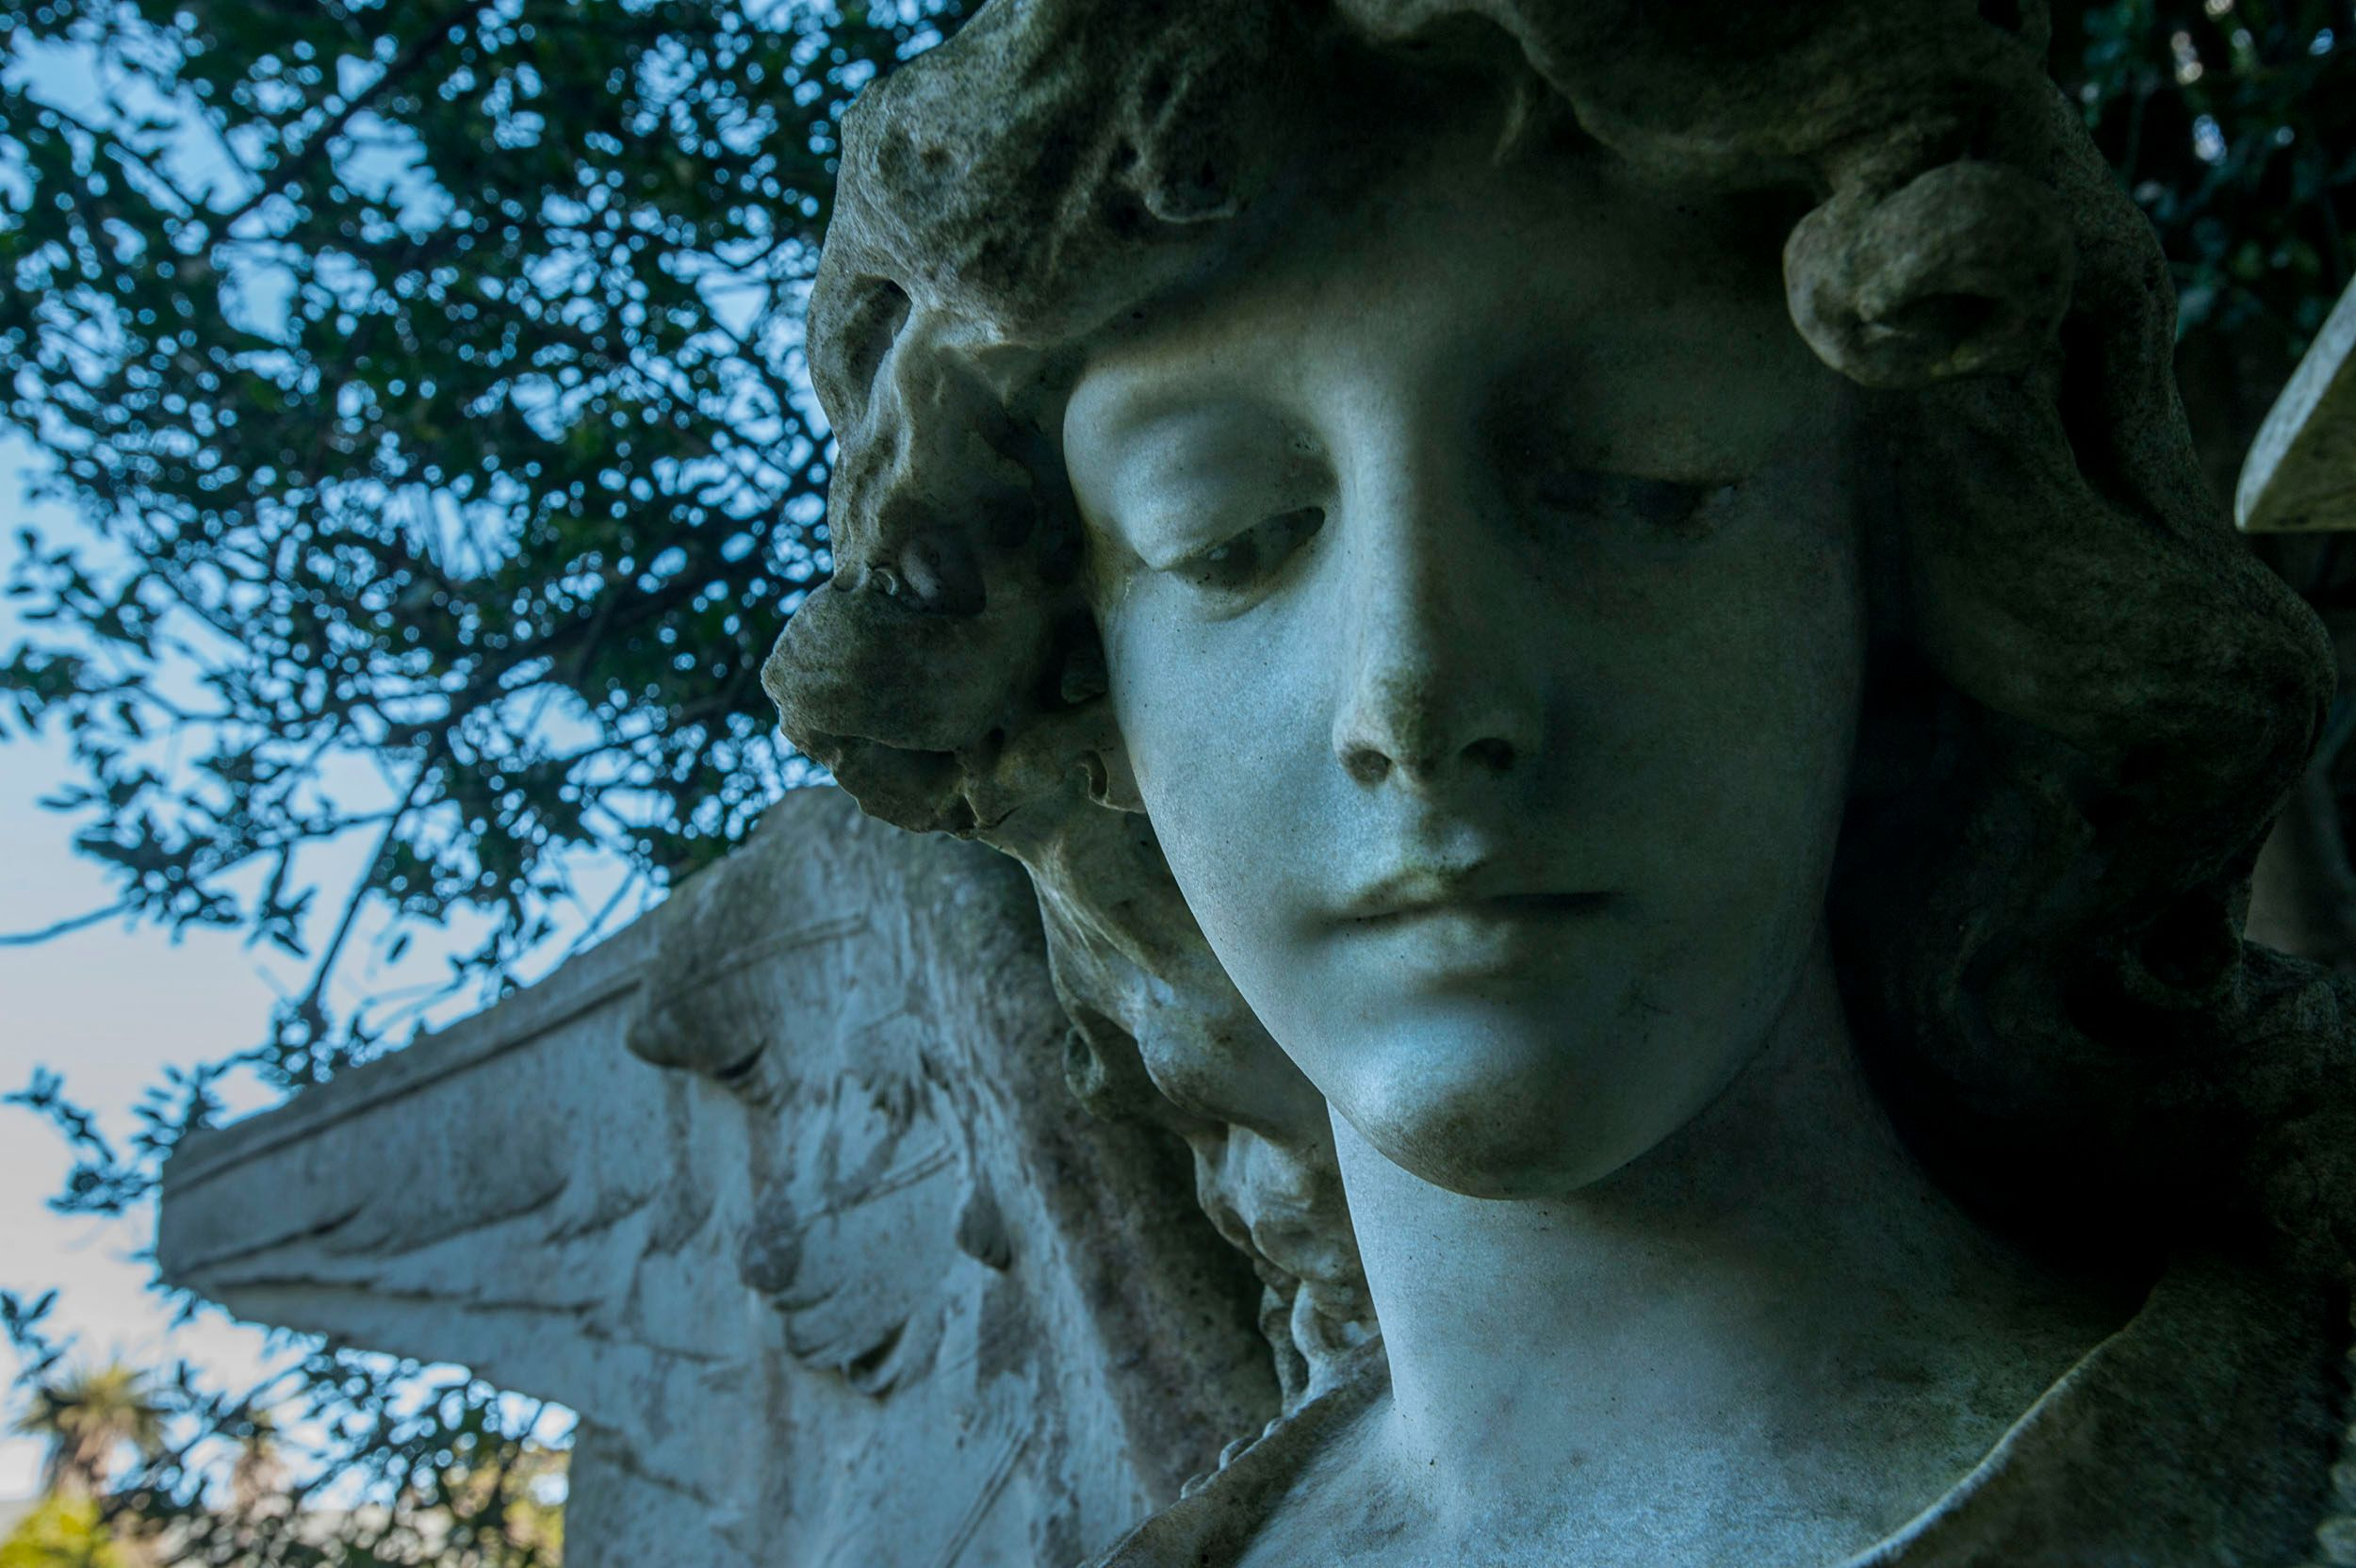 Cemetery Statue of a Female Angel